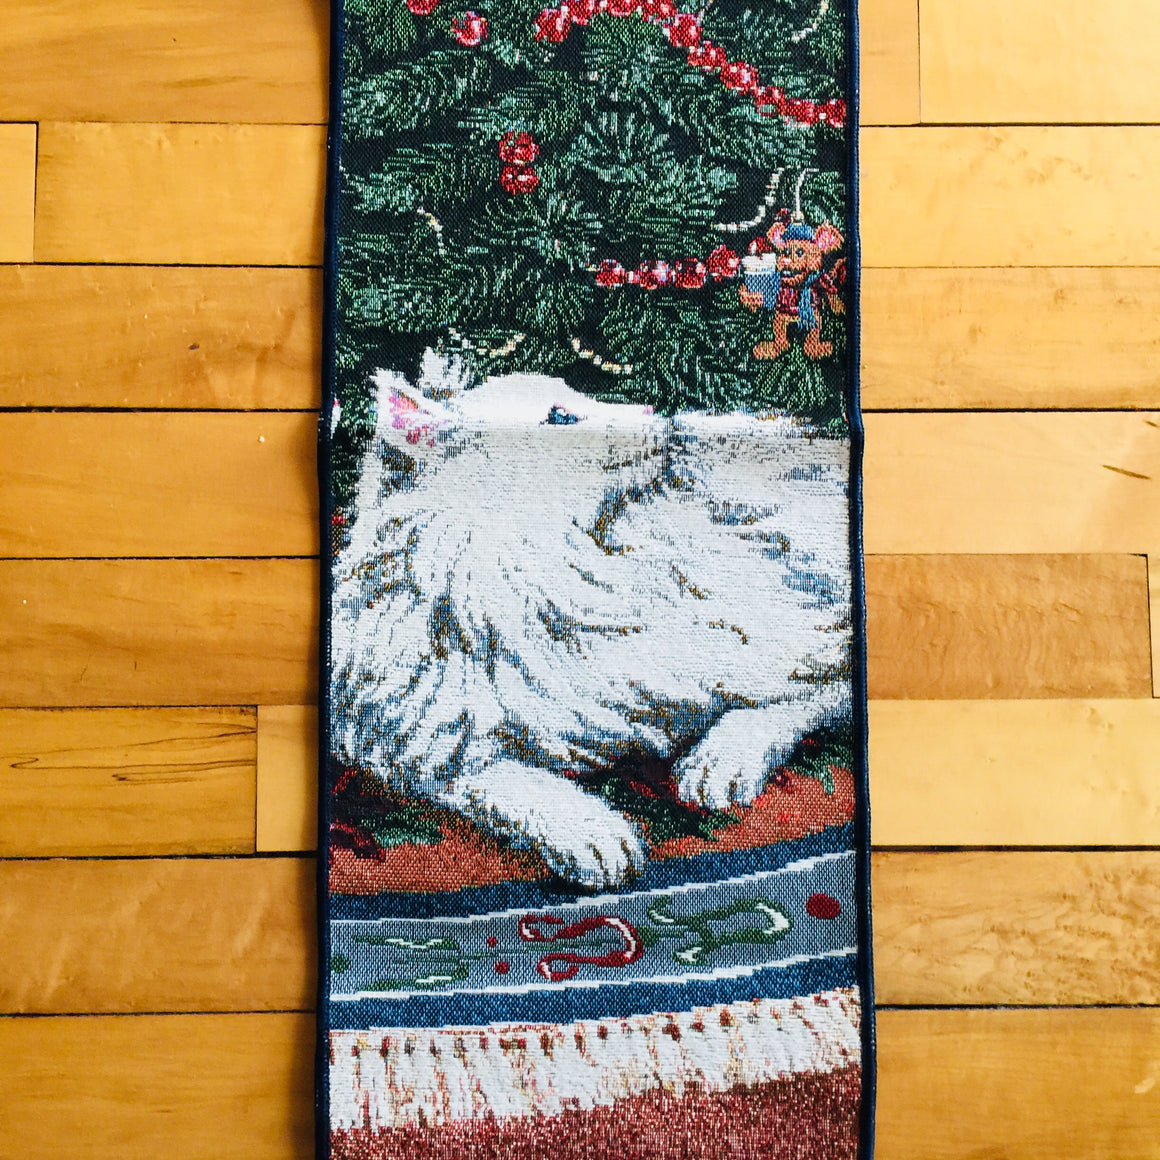 Woven Fabric Wall Hanging - Holiday Tree & White Cat